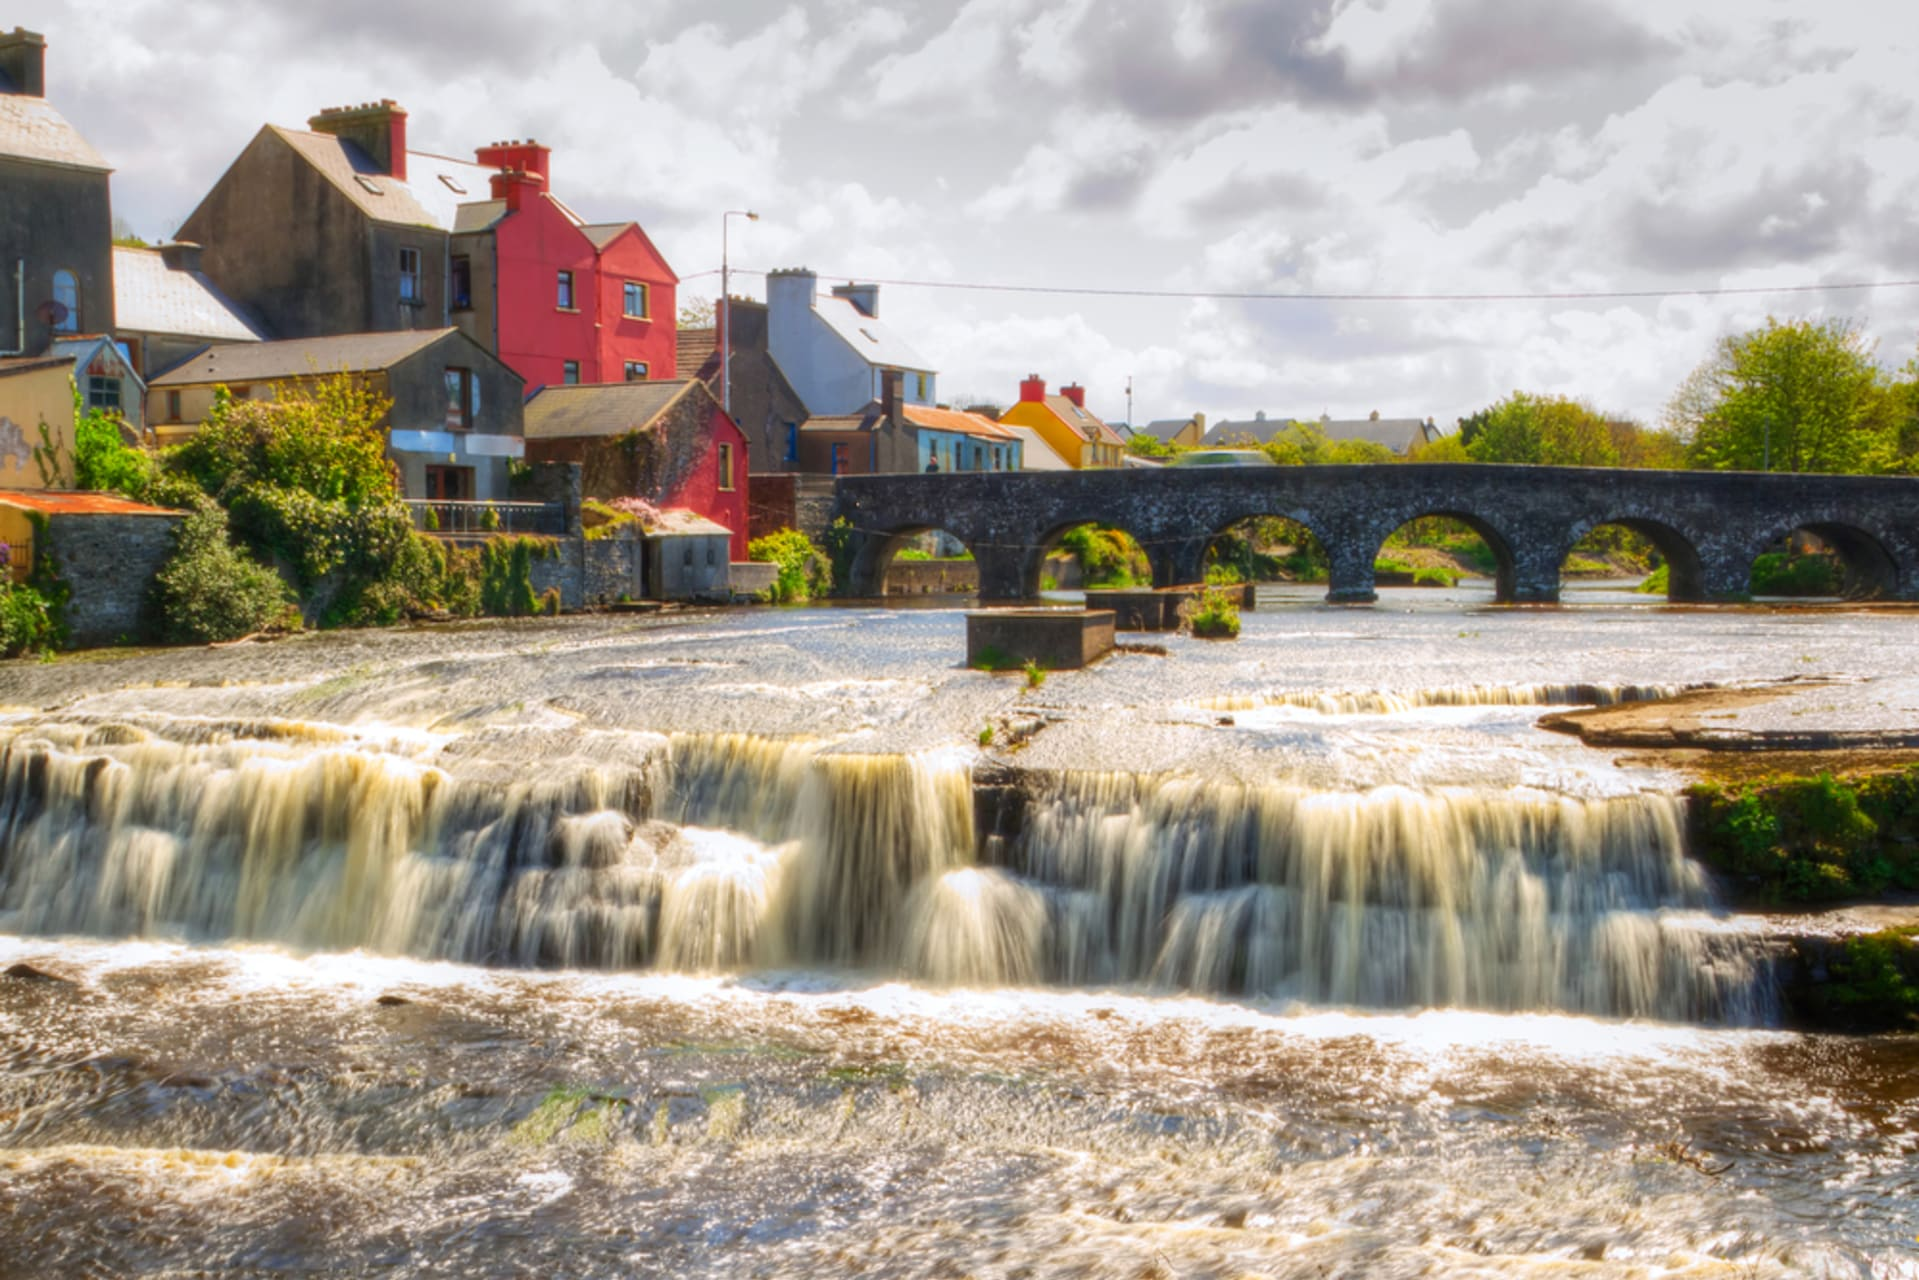 West of Ireland - Ennistymon, the Cascades and Location of the Father Ted TV Series